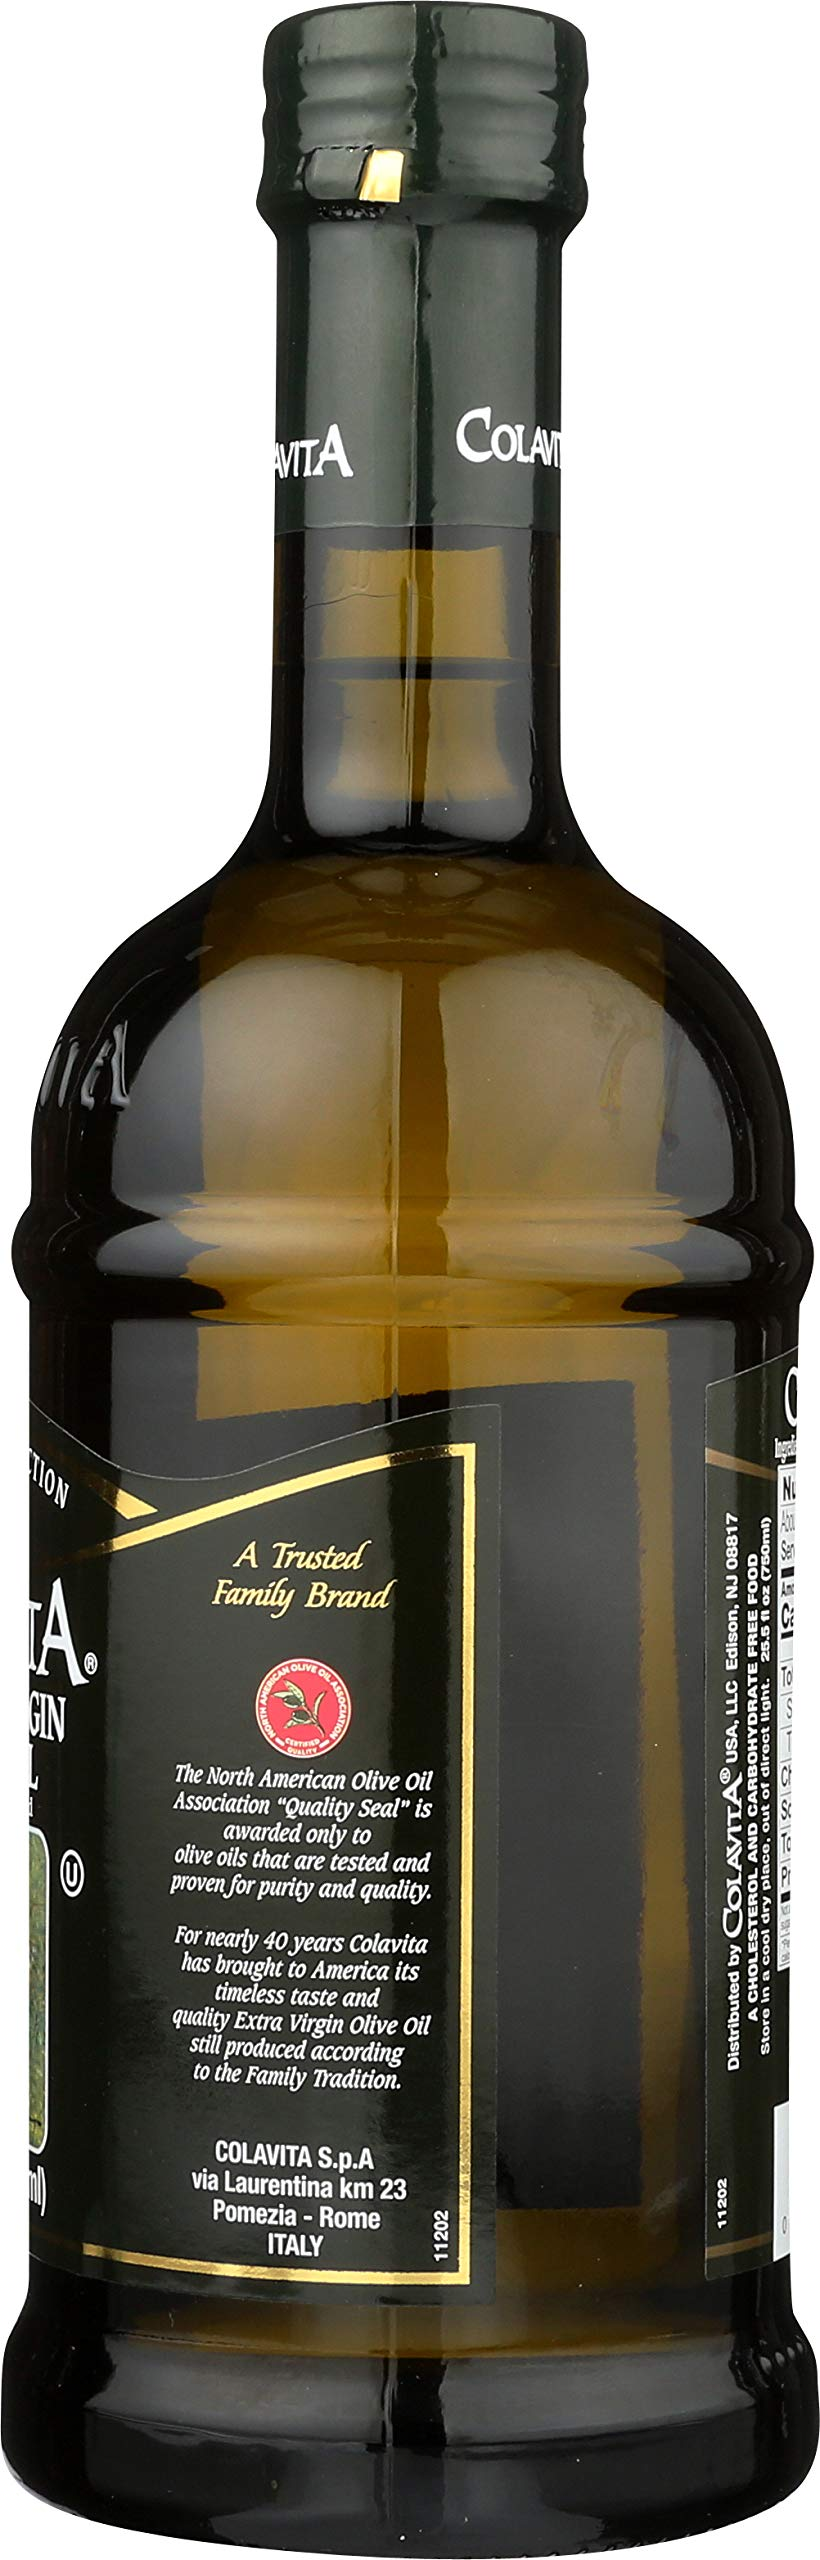 Colavita Extra Virgin Olive Oil, First Cold Pressed, 25.5 fl. oz., Glass Bottle by Colavita (Image #7)